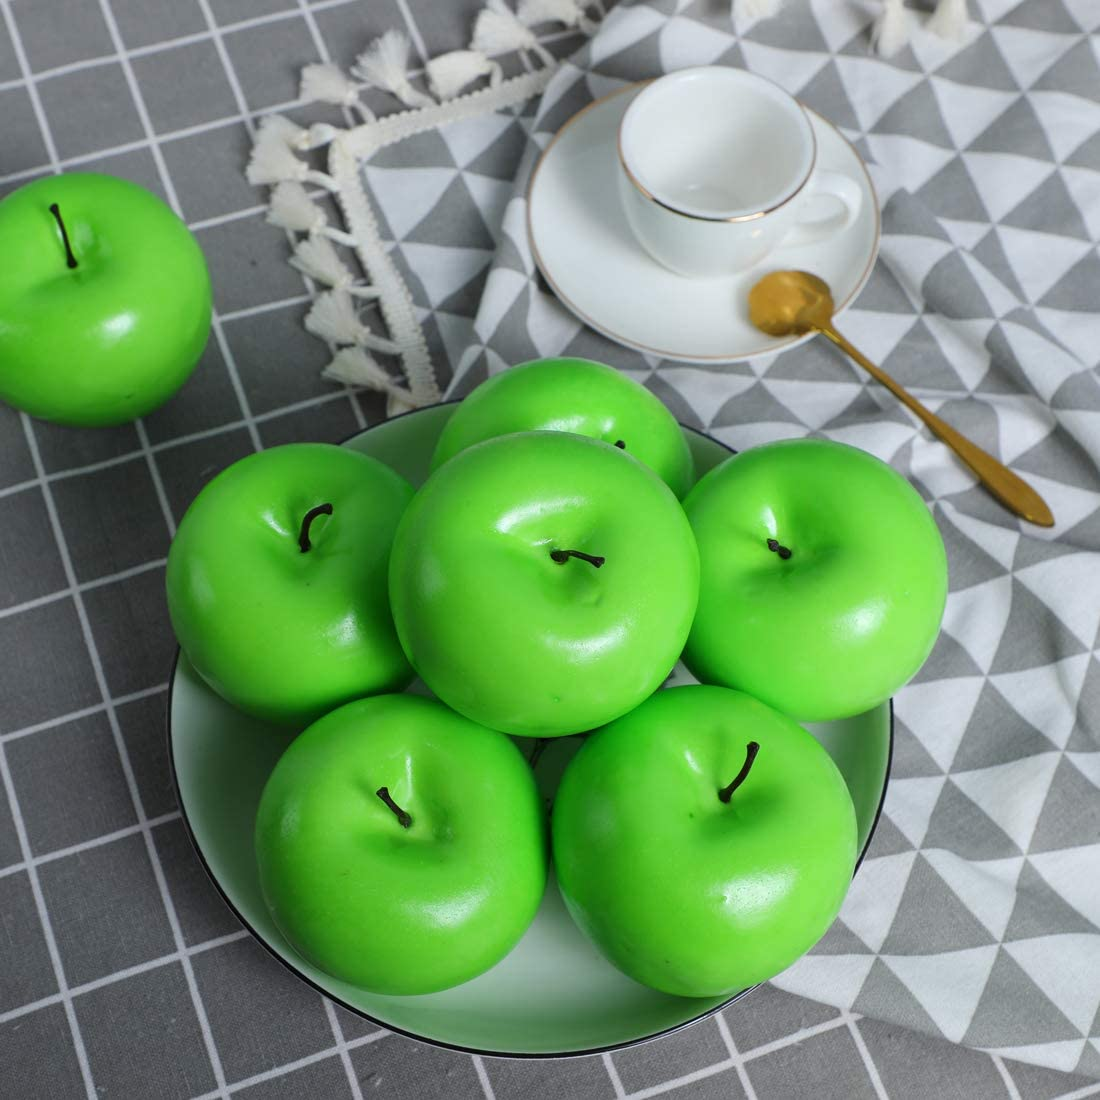 Anna Homey Deco 12PCS Fake Apple Artificial Realistic Lifelike Decorative Fruits & Vegetables Hand Made for Home, Kitchen, Party Decor(Green)